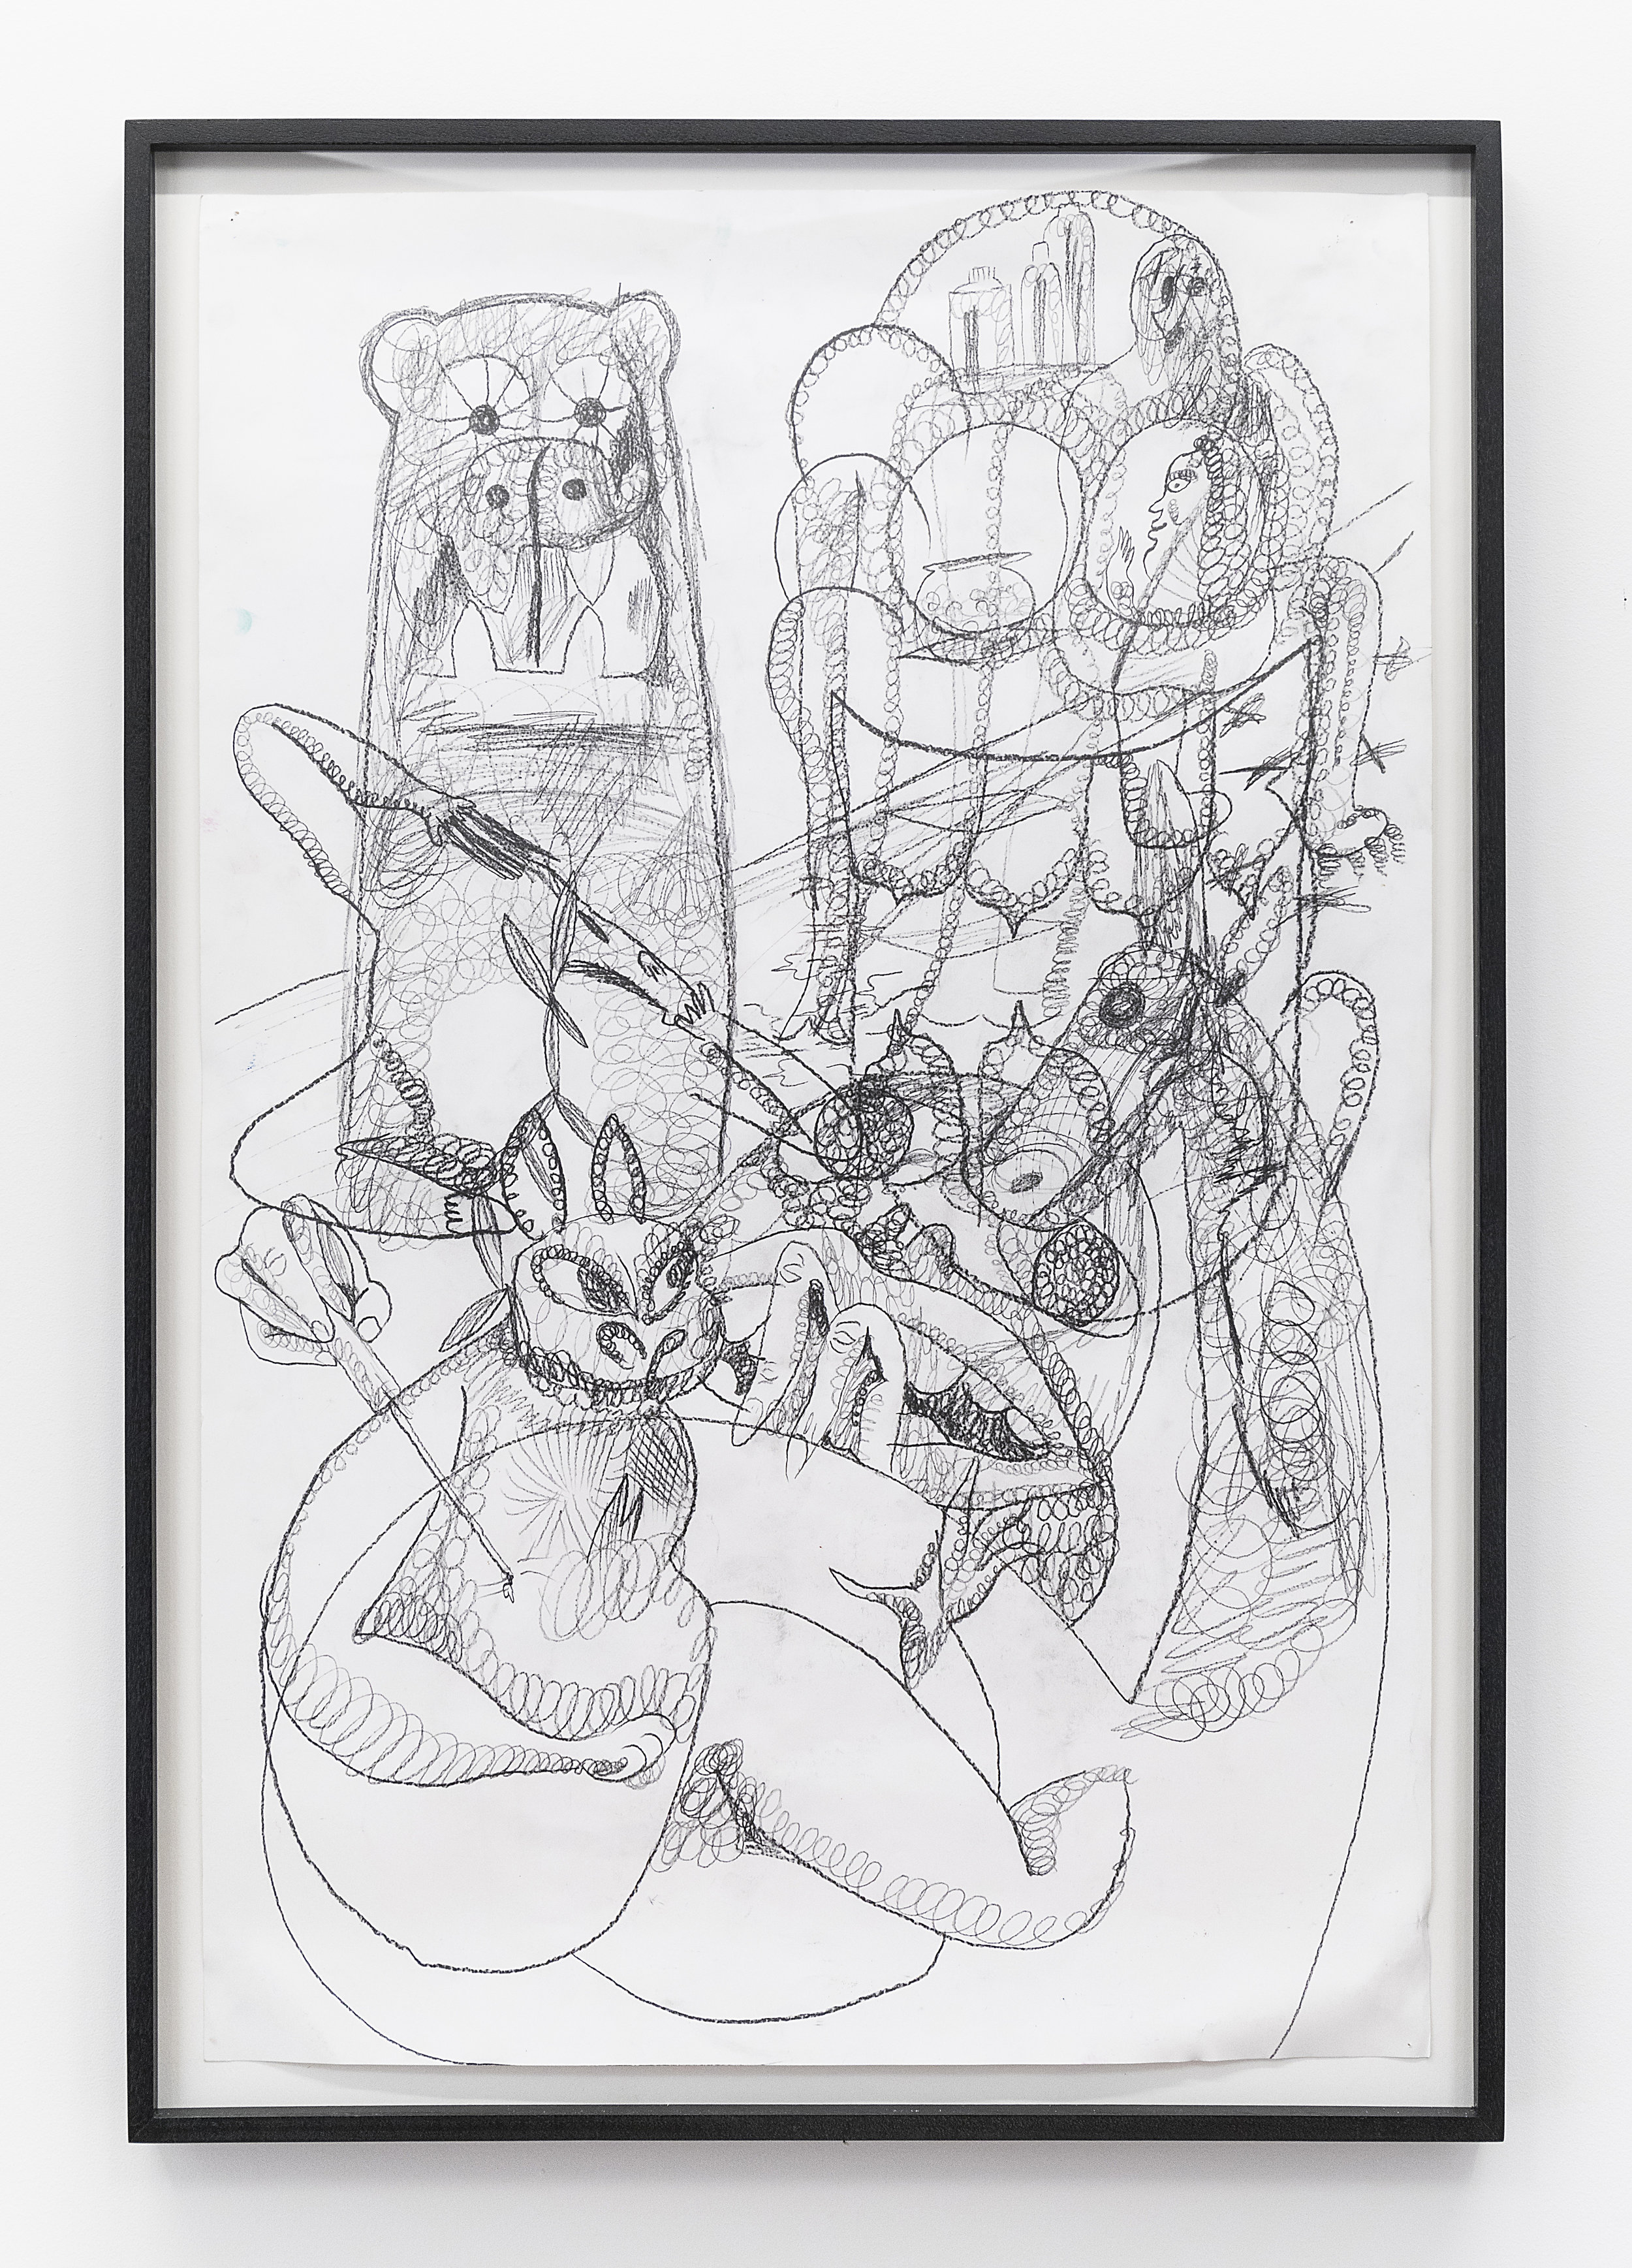 Billy Grant  Lambsy Doodle  2018 Pencil on paper 35 x 22 1/2 inches